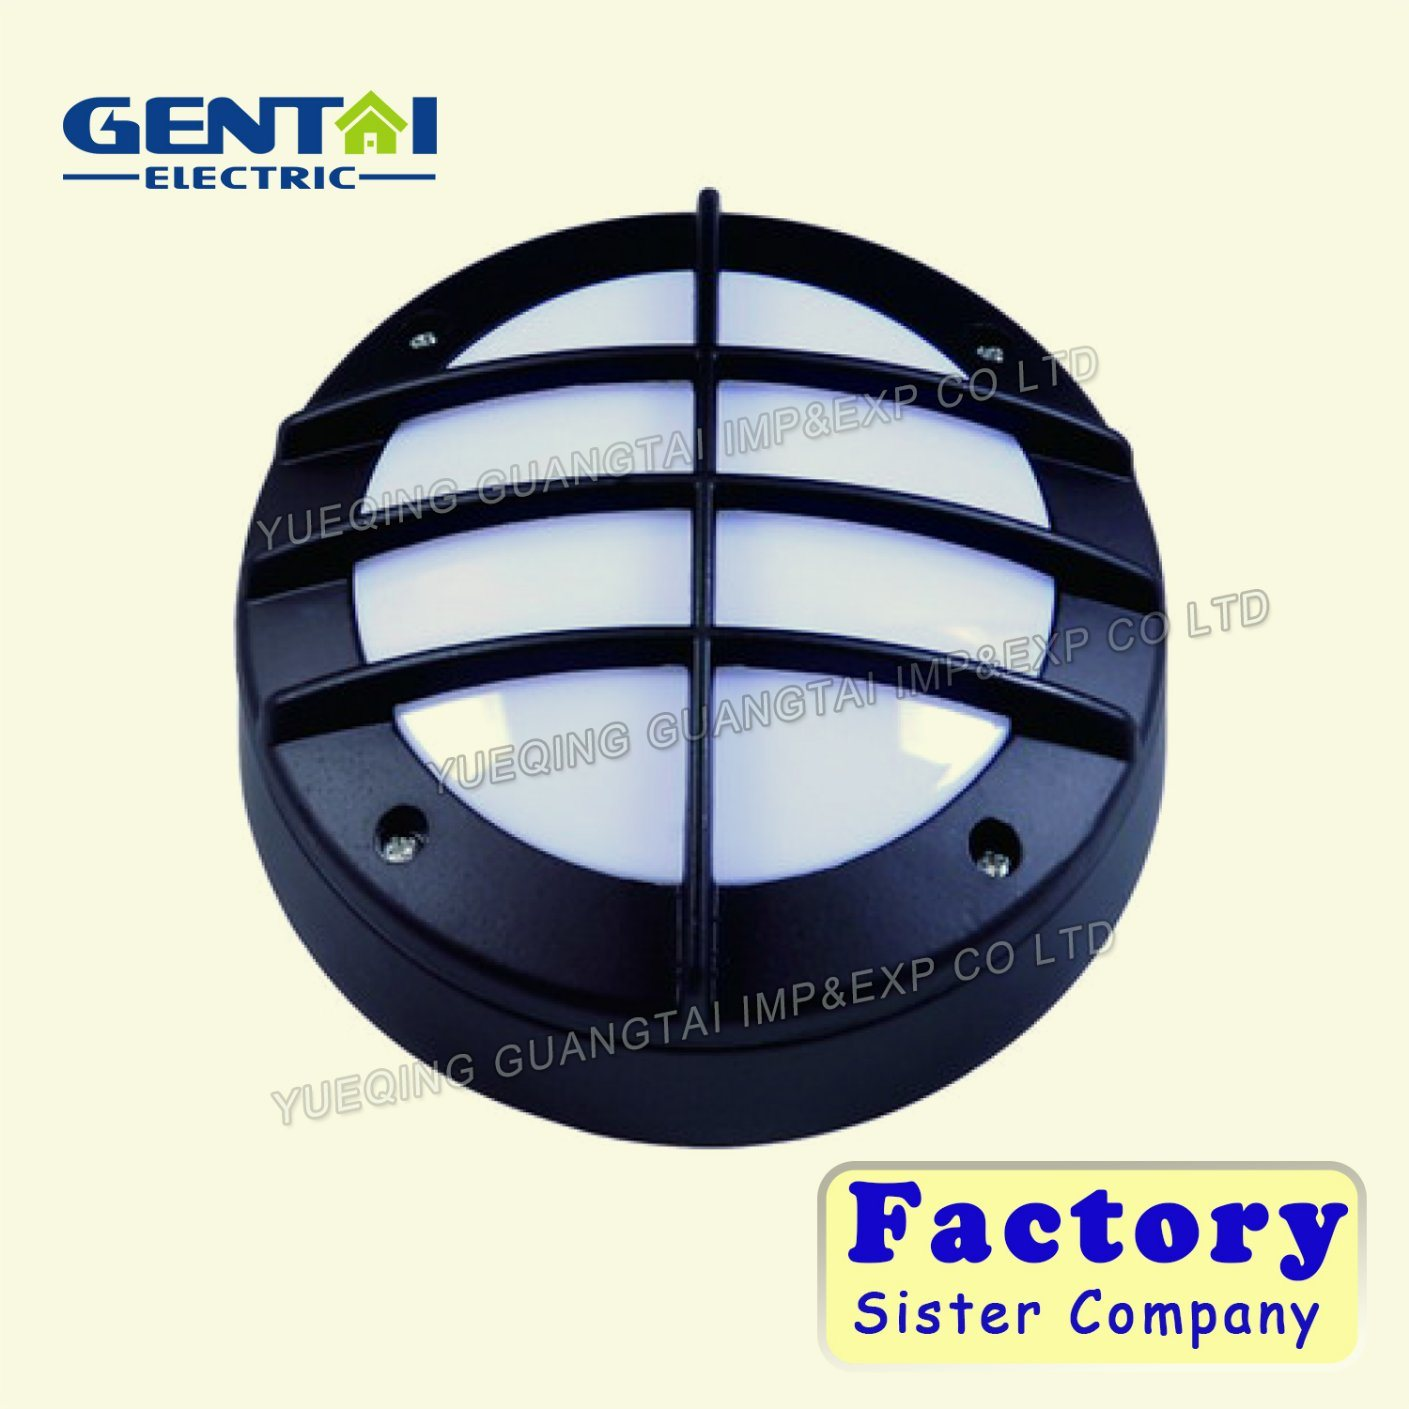 LED Dampproof Light Dampproof Light Wall Light